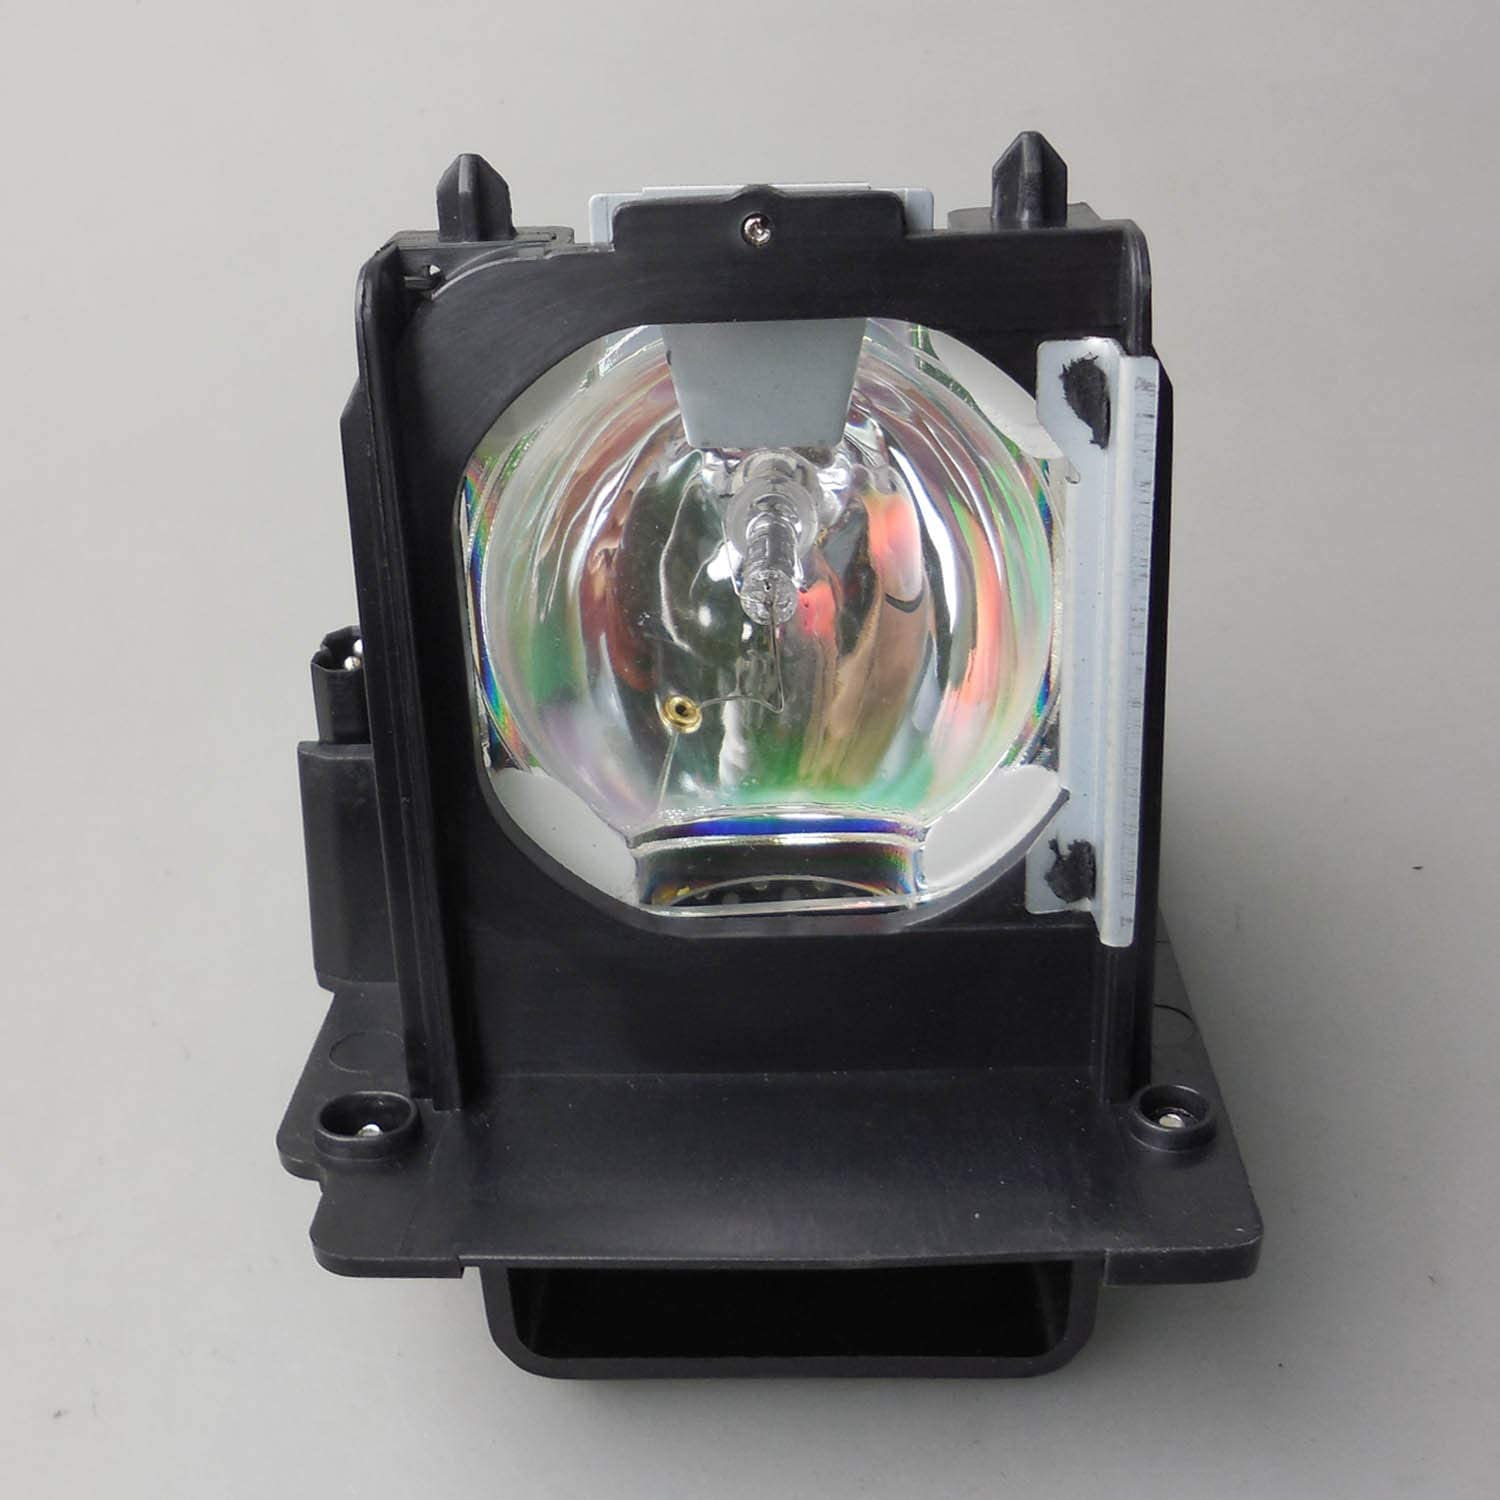 CTLAMP A+ Quality 915b455011 Compatible Projector Lamp with Housing 915b455011 DLP/LCD Projection TV Lamp Compatible with Mitsubishi WD-73640 WD-73740 WD-73840